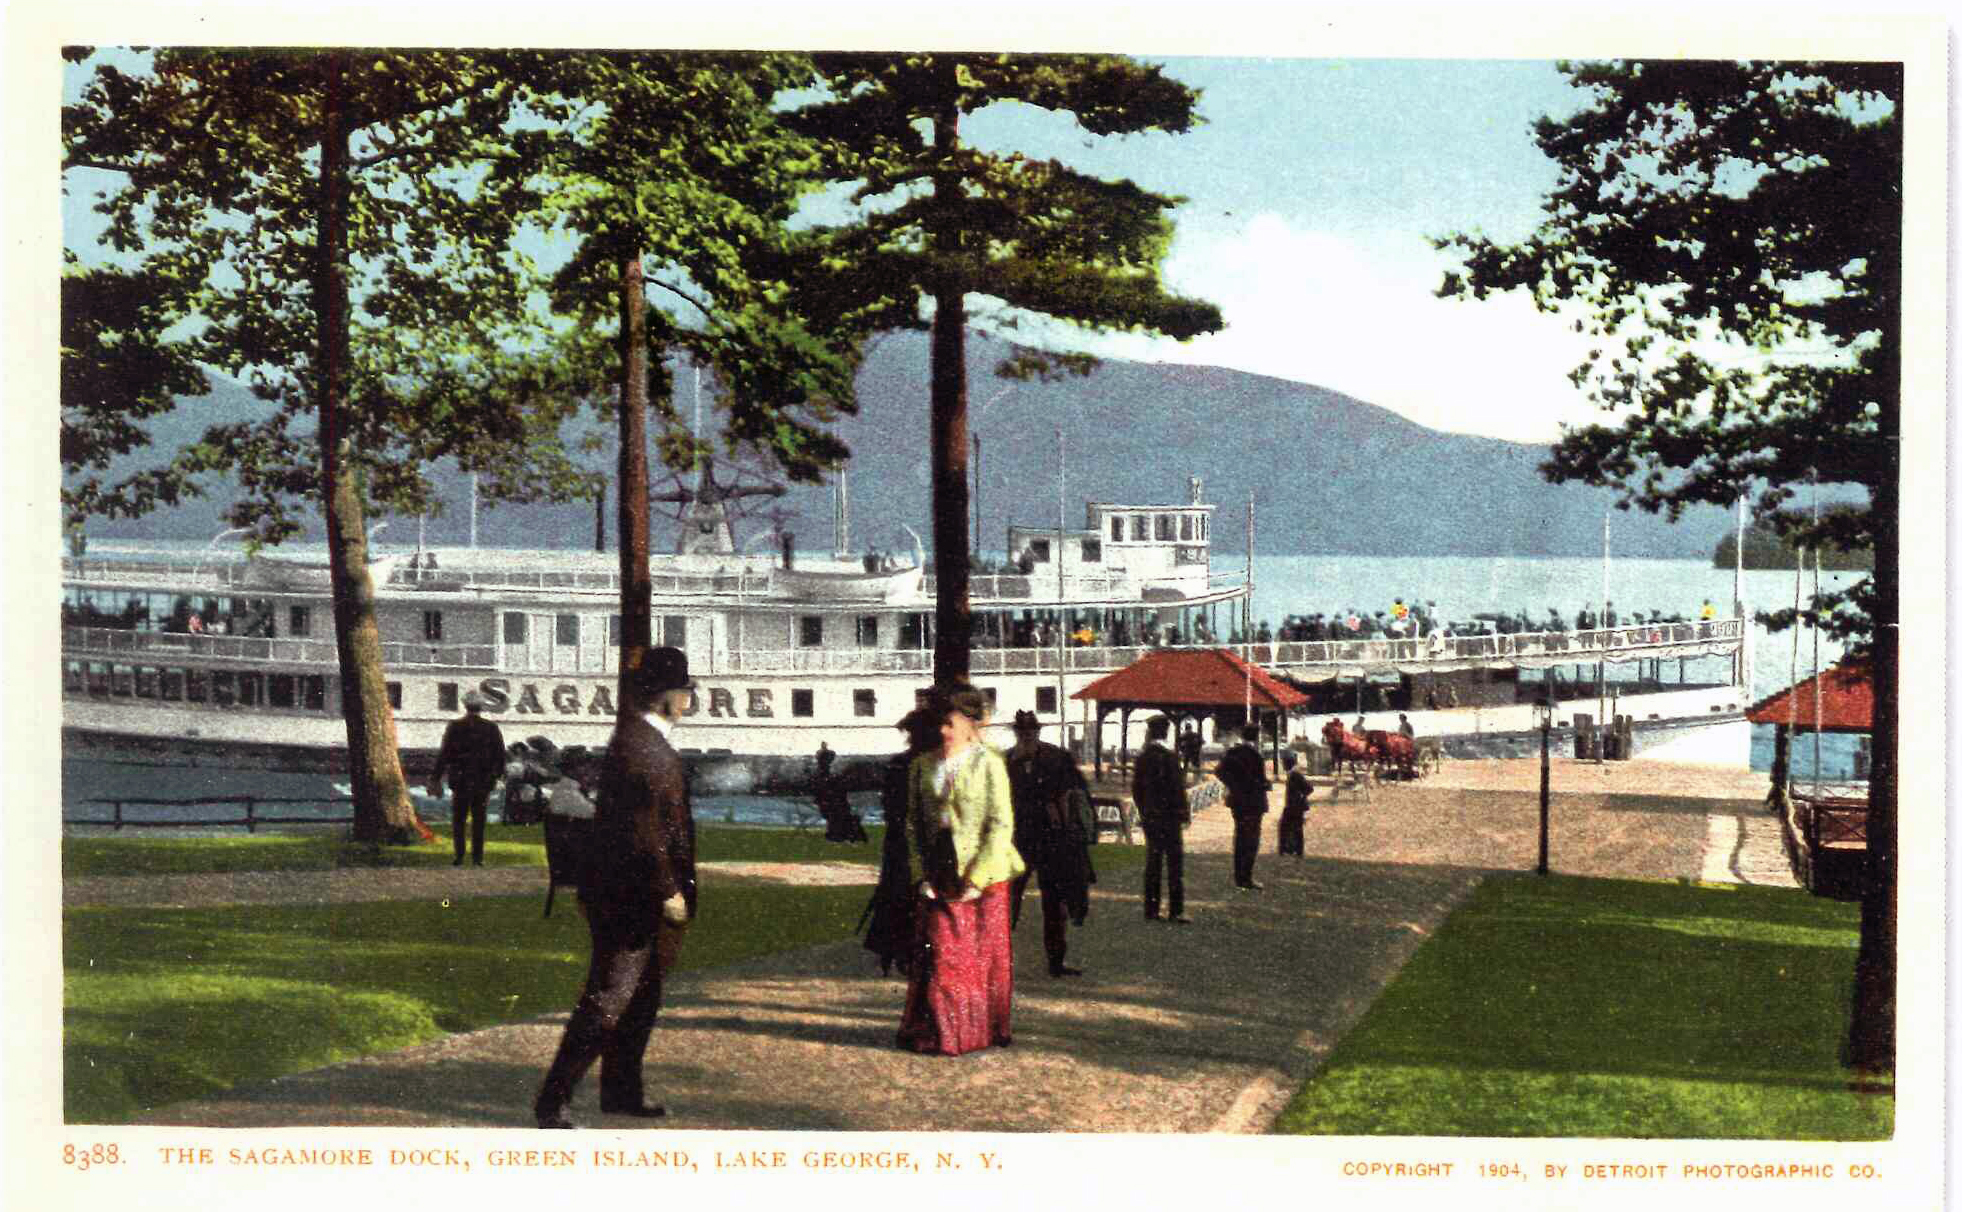 The Sagamore dock, Green Island, Lake George